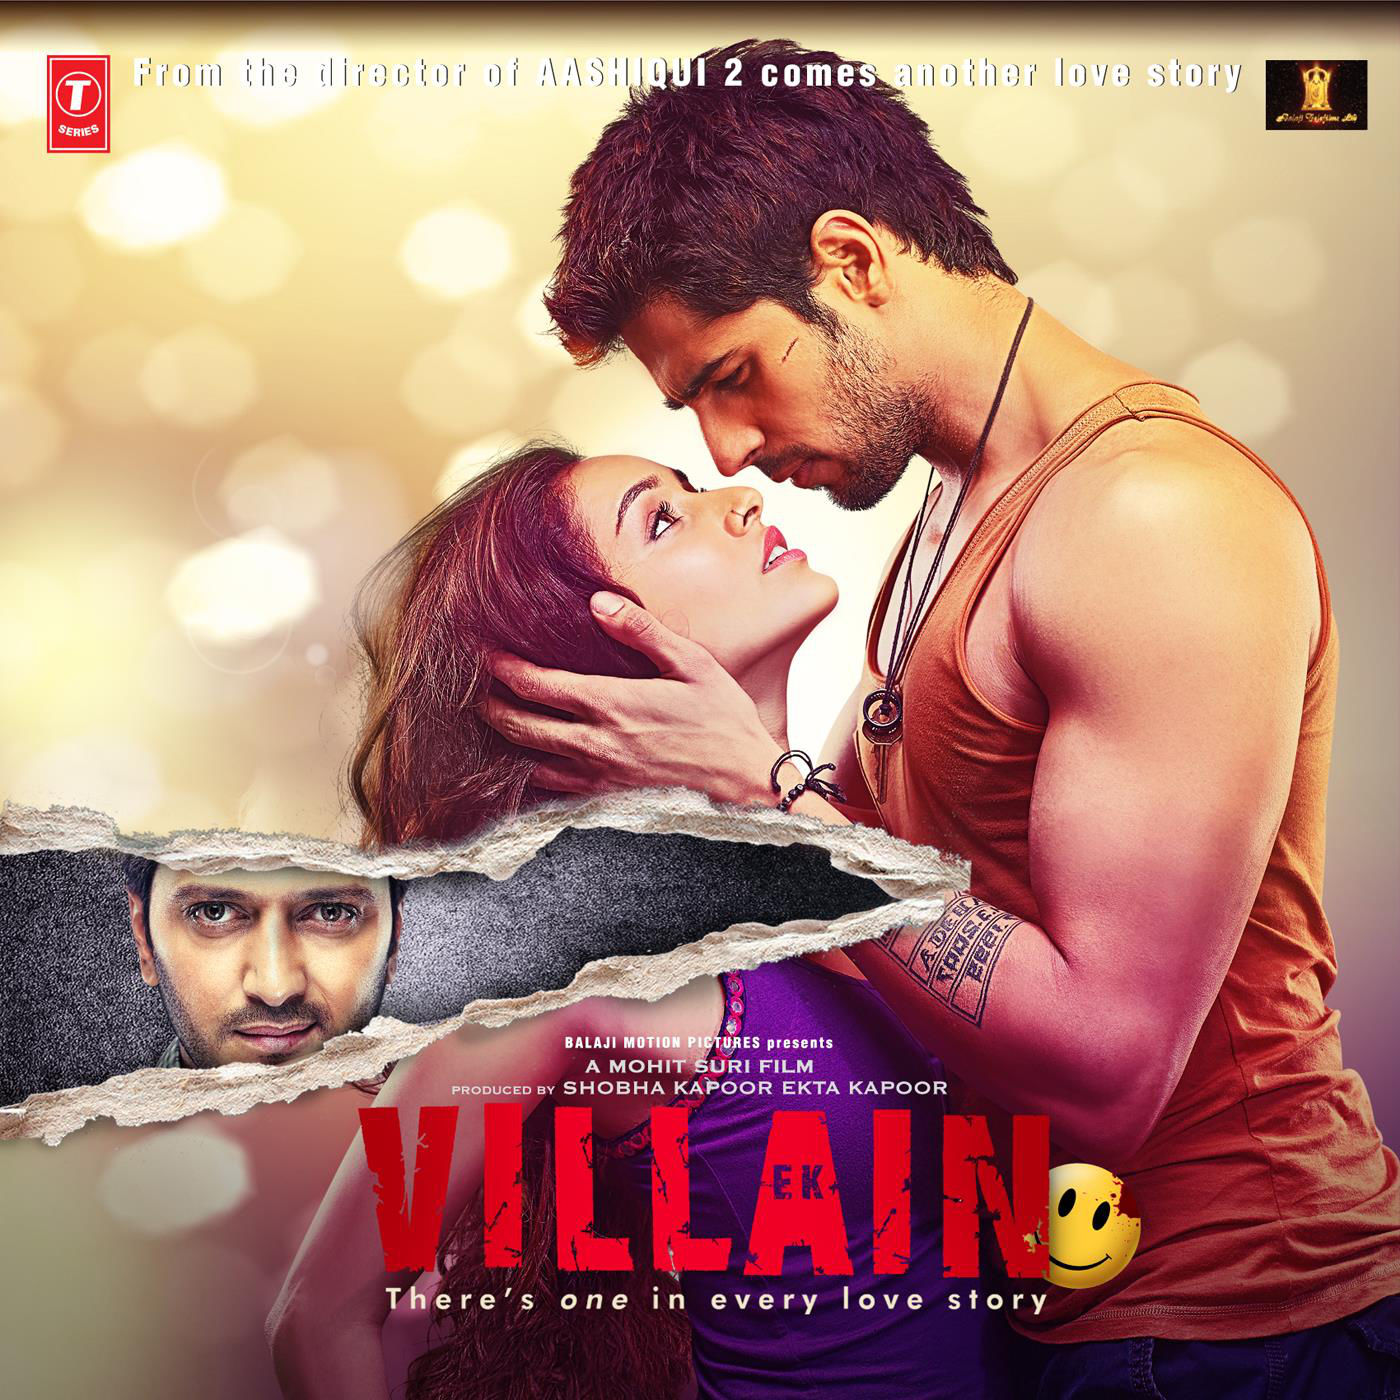 Ankit Tiwari, Mithoon, Rabbi Ahmed & Adnan Dhool – Ek Villain (Original Motion Picture Soundtrack) [iTunes Plus M4A] | iplusall.4fullz.com